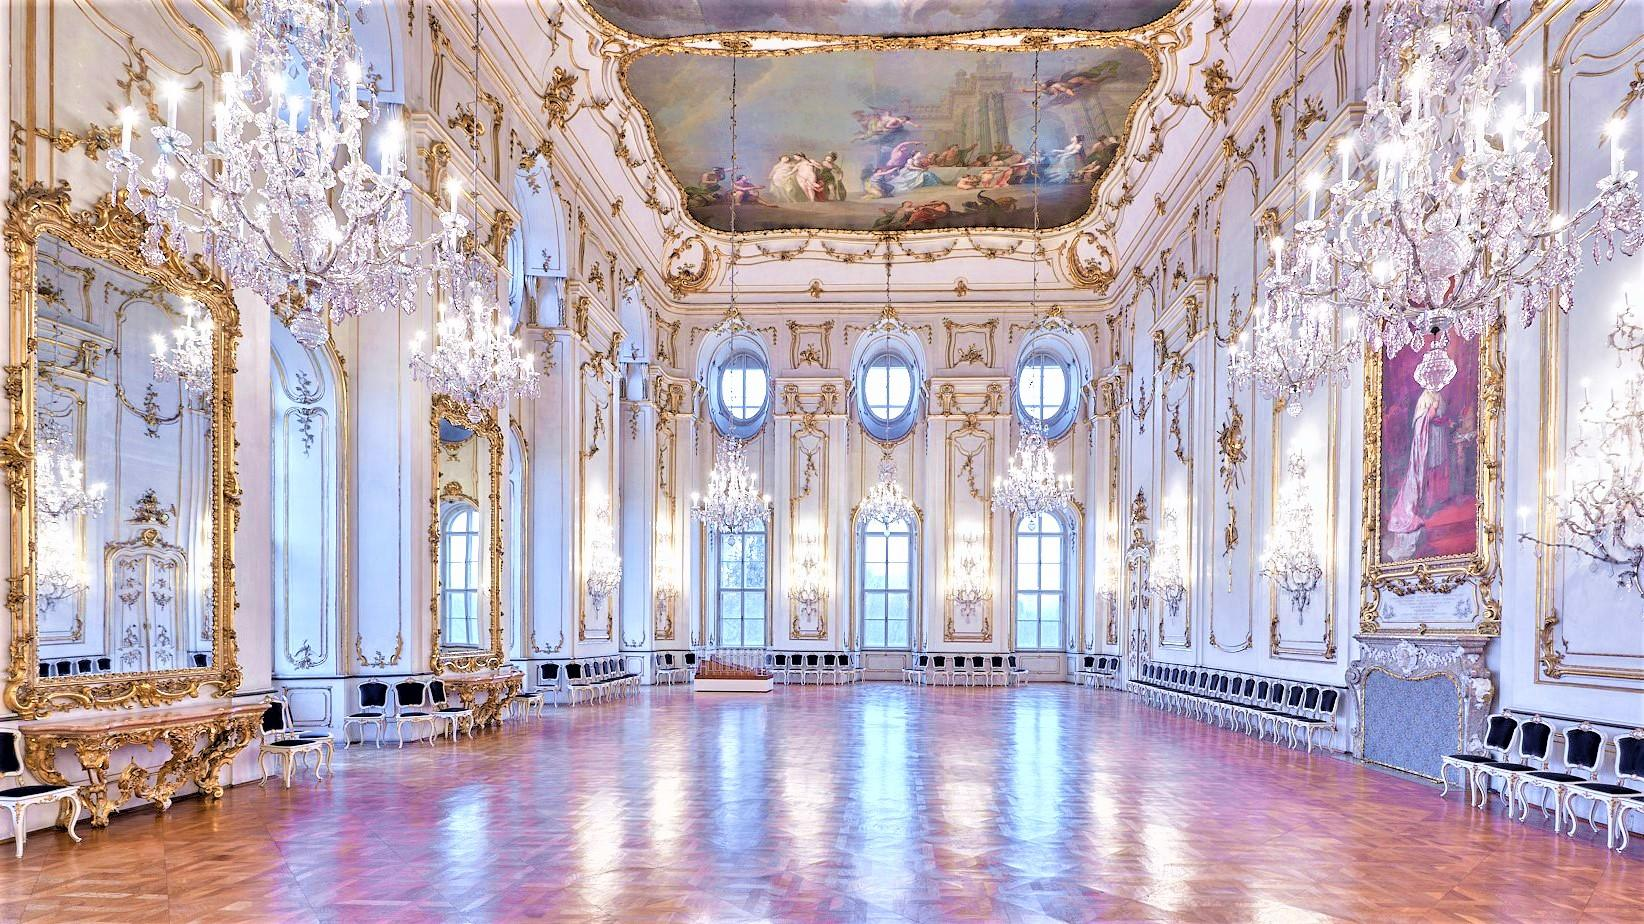 The Great Dining Hall was rebuilt because of the important event - The Constitutive Assembly of the Austrian Nations. Todays it is one of the largest Roccoco halls in the Czech Republic. – © Tomas Vrtal